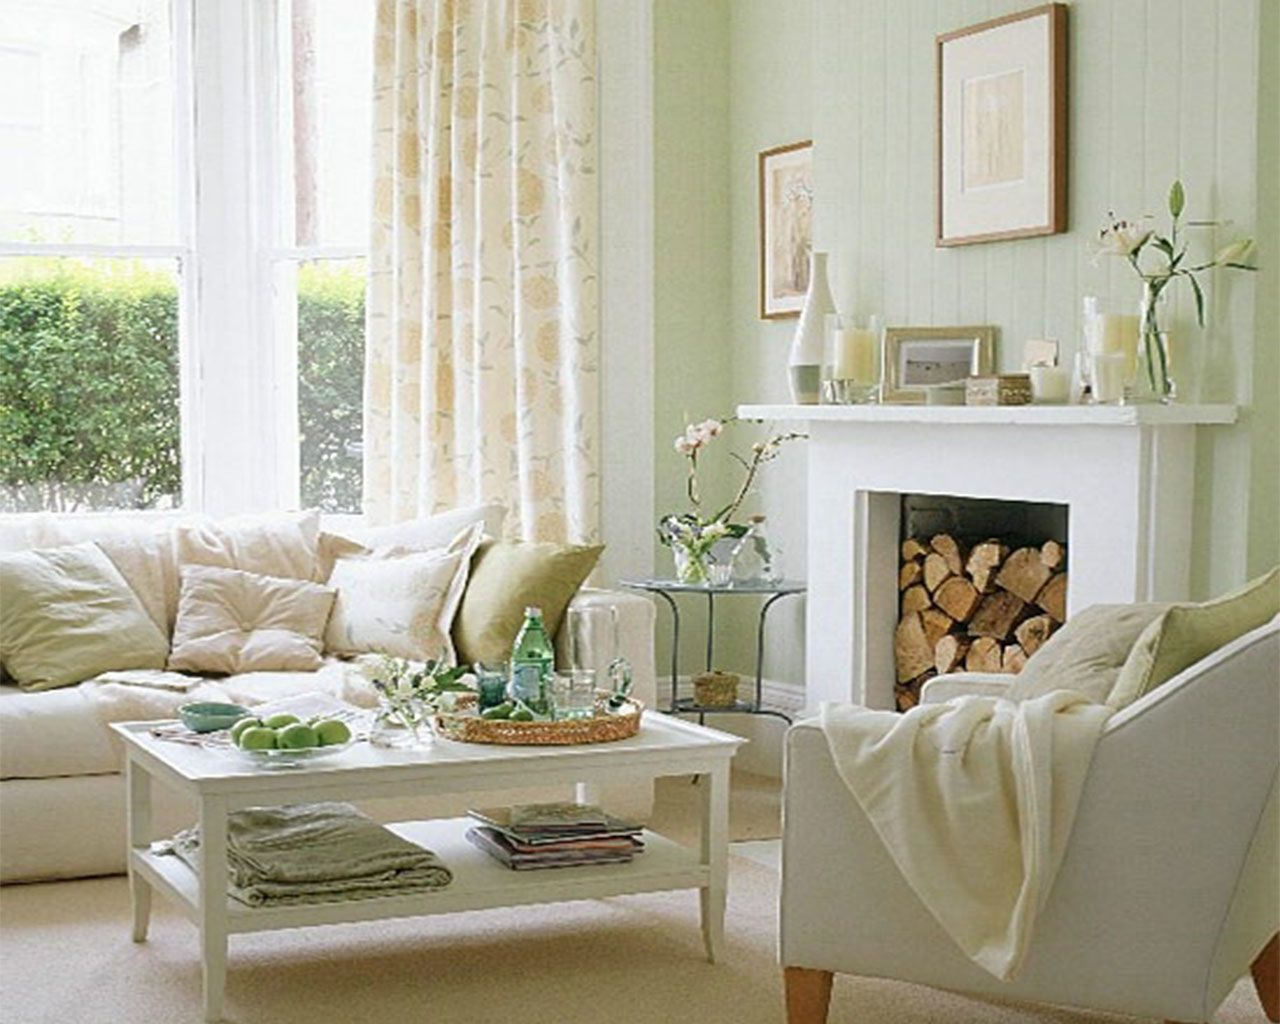 39 Living Room Ideas With Light Brown Sofas Green Blue: Creamy White Living Room With Accents Of Very Light Green